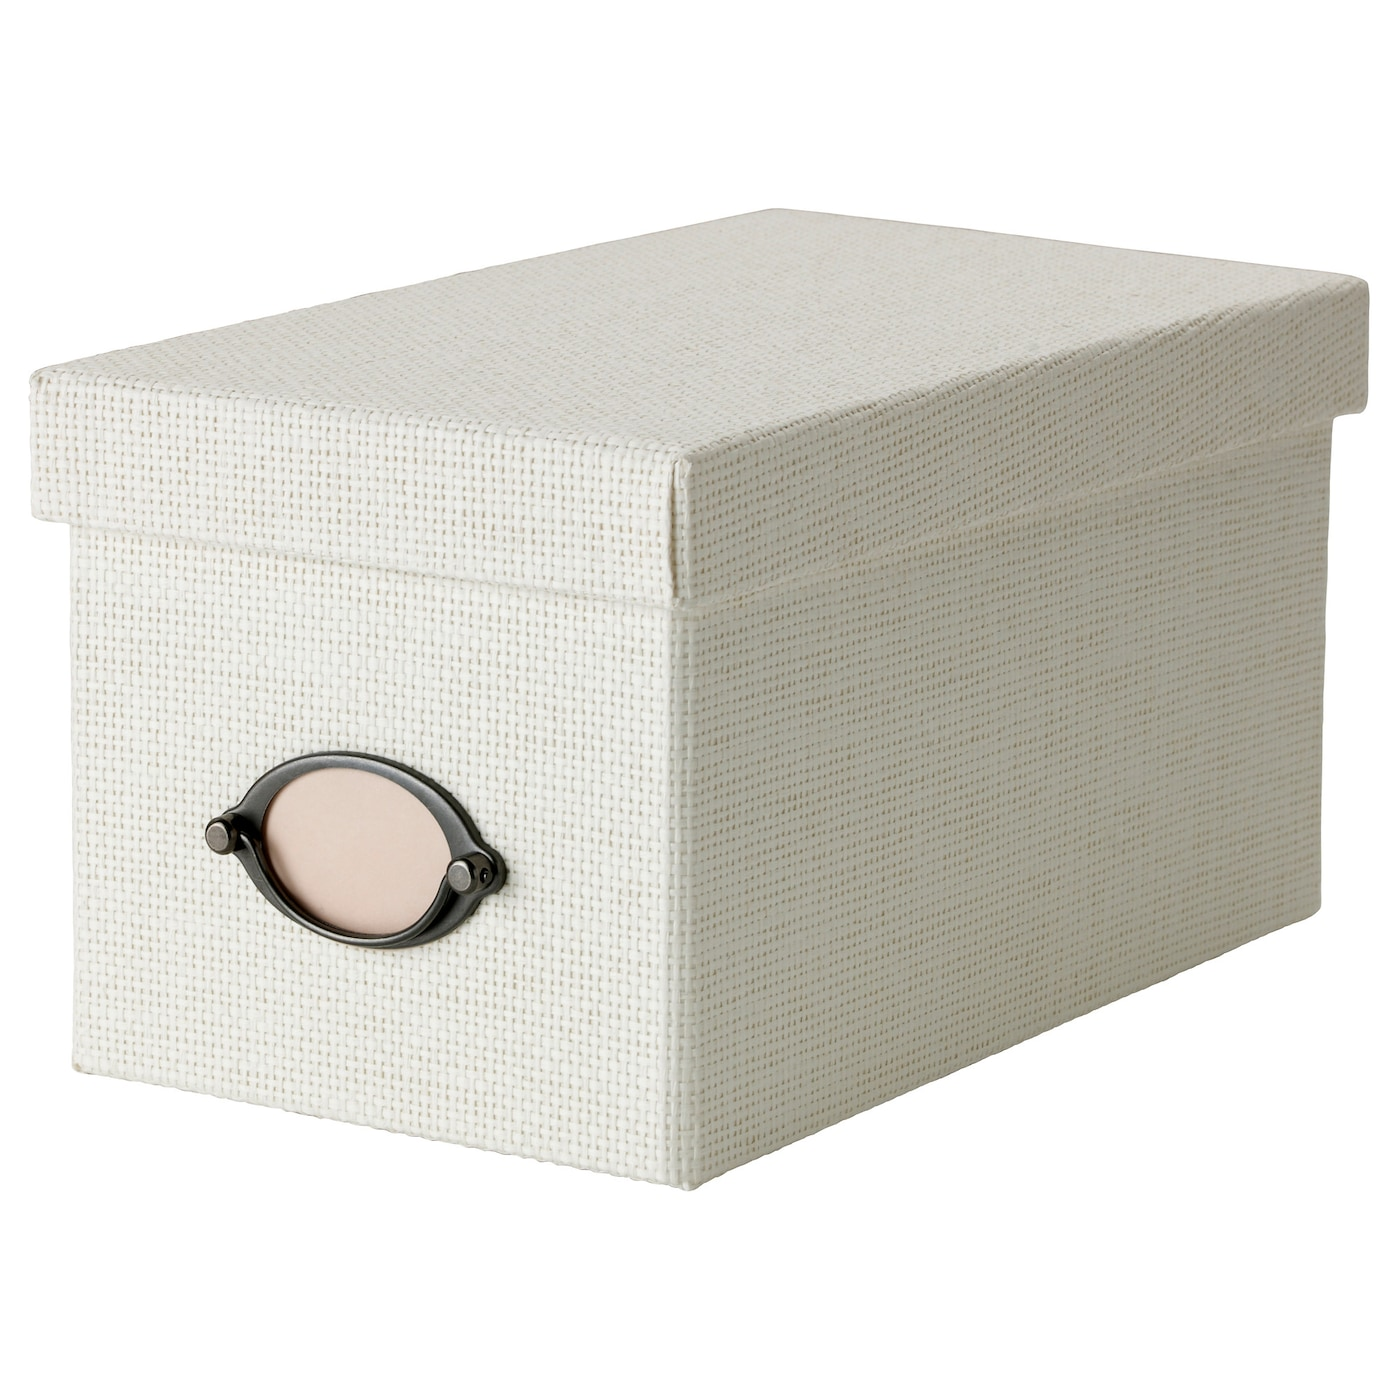 kvarnvik box with lid white 16x29x15 cm ikea. Black Bedroom Furniture Sets. Home Design Ideas